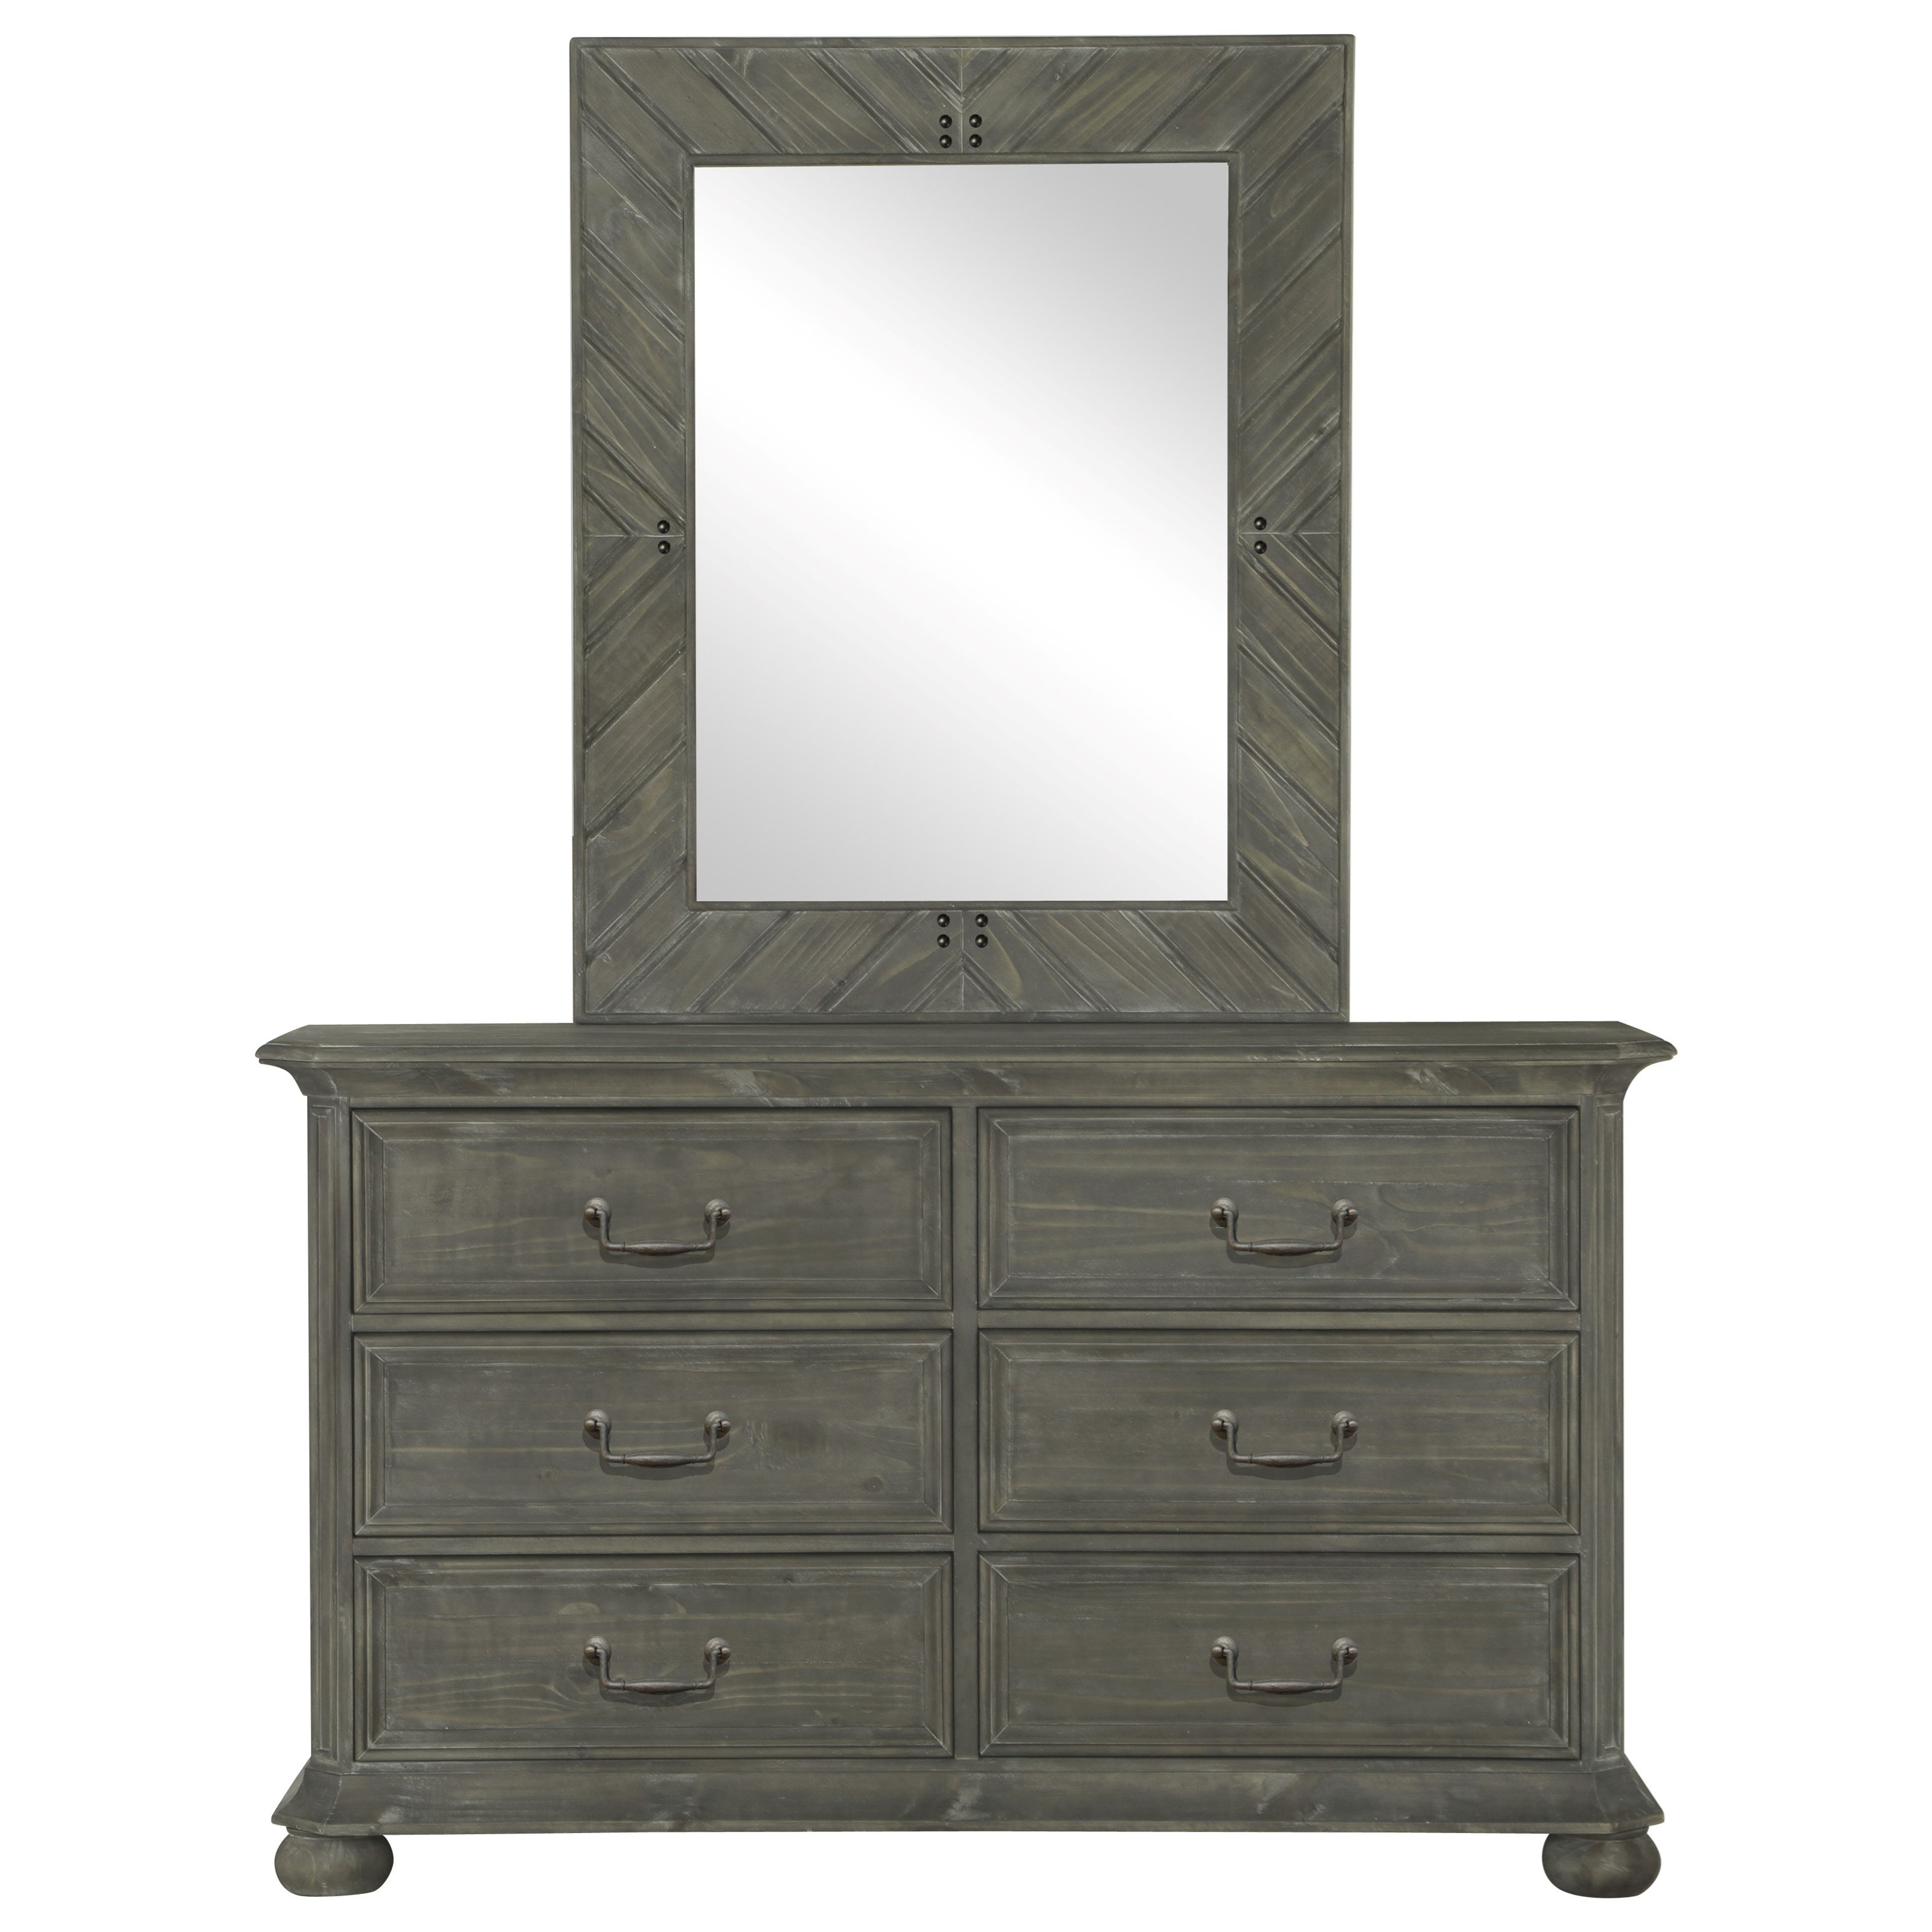 Cheswick Dresser and Mirror by Magnussen Home at Value City Furniture